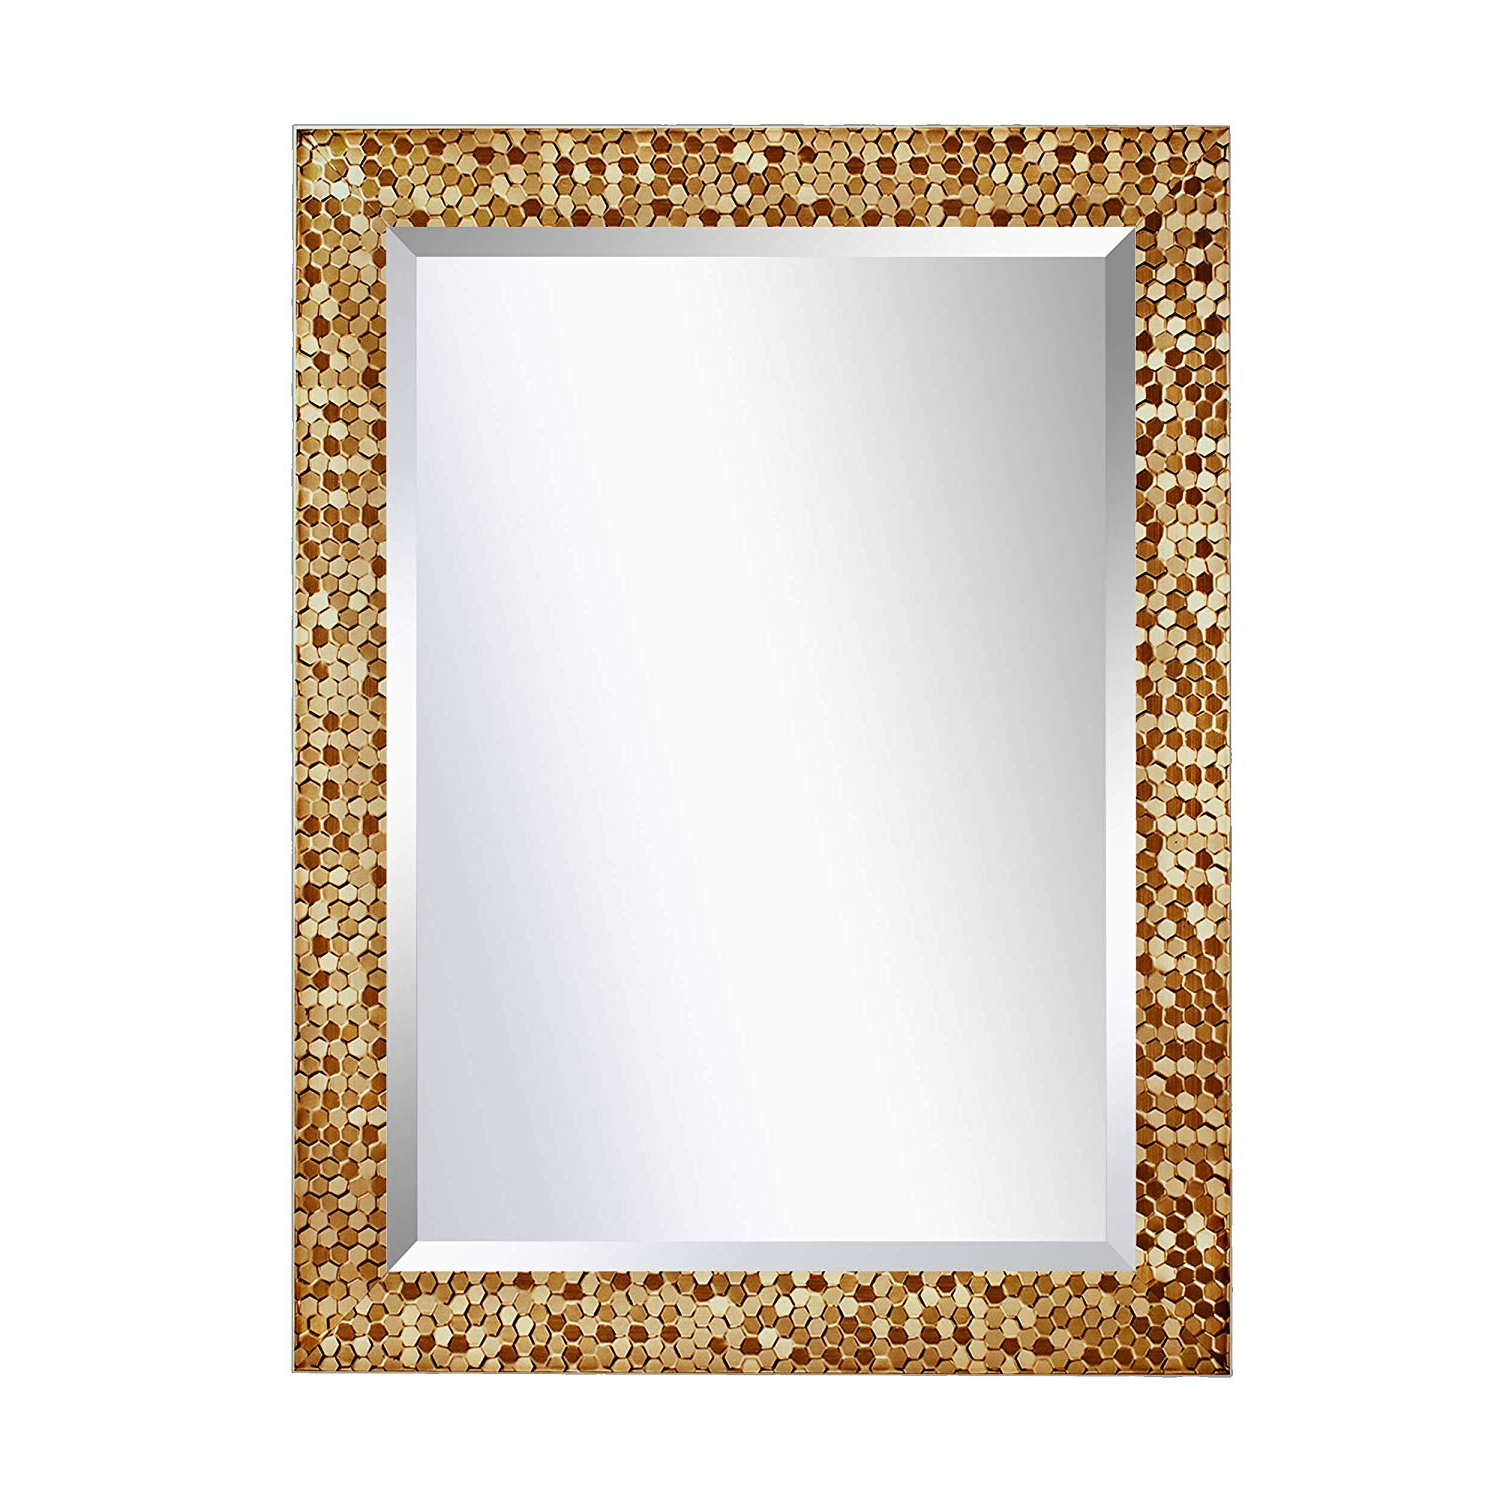 Mirror Trend Gold Mosaic Design Framed Decorative Wall Mirror Large Rectangle Mirror For Living Room, Bedroom, Vanity, Dining Room, Bathroom Hangs Regarding Well Known Large Decorative Wall Mirrors (View 3 of 20)